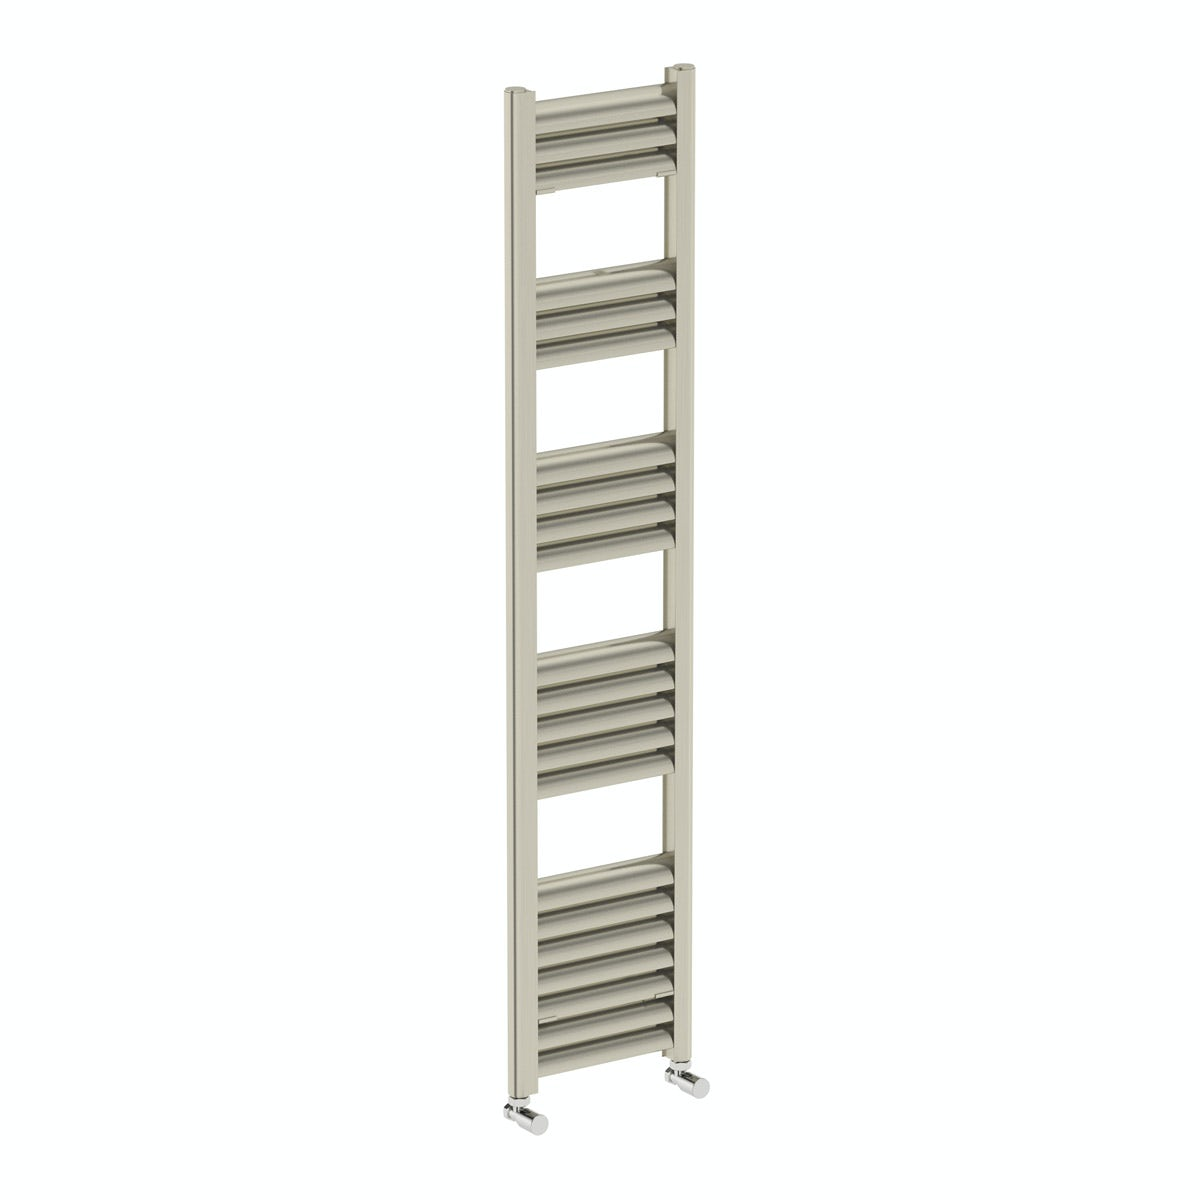 Champagne heated towel rail 1400 x 300